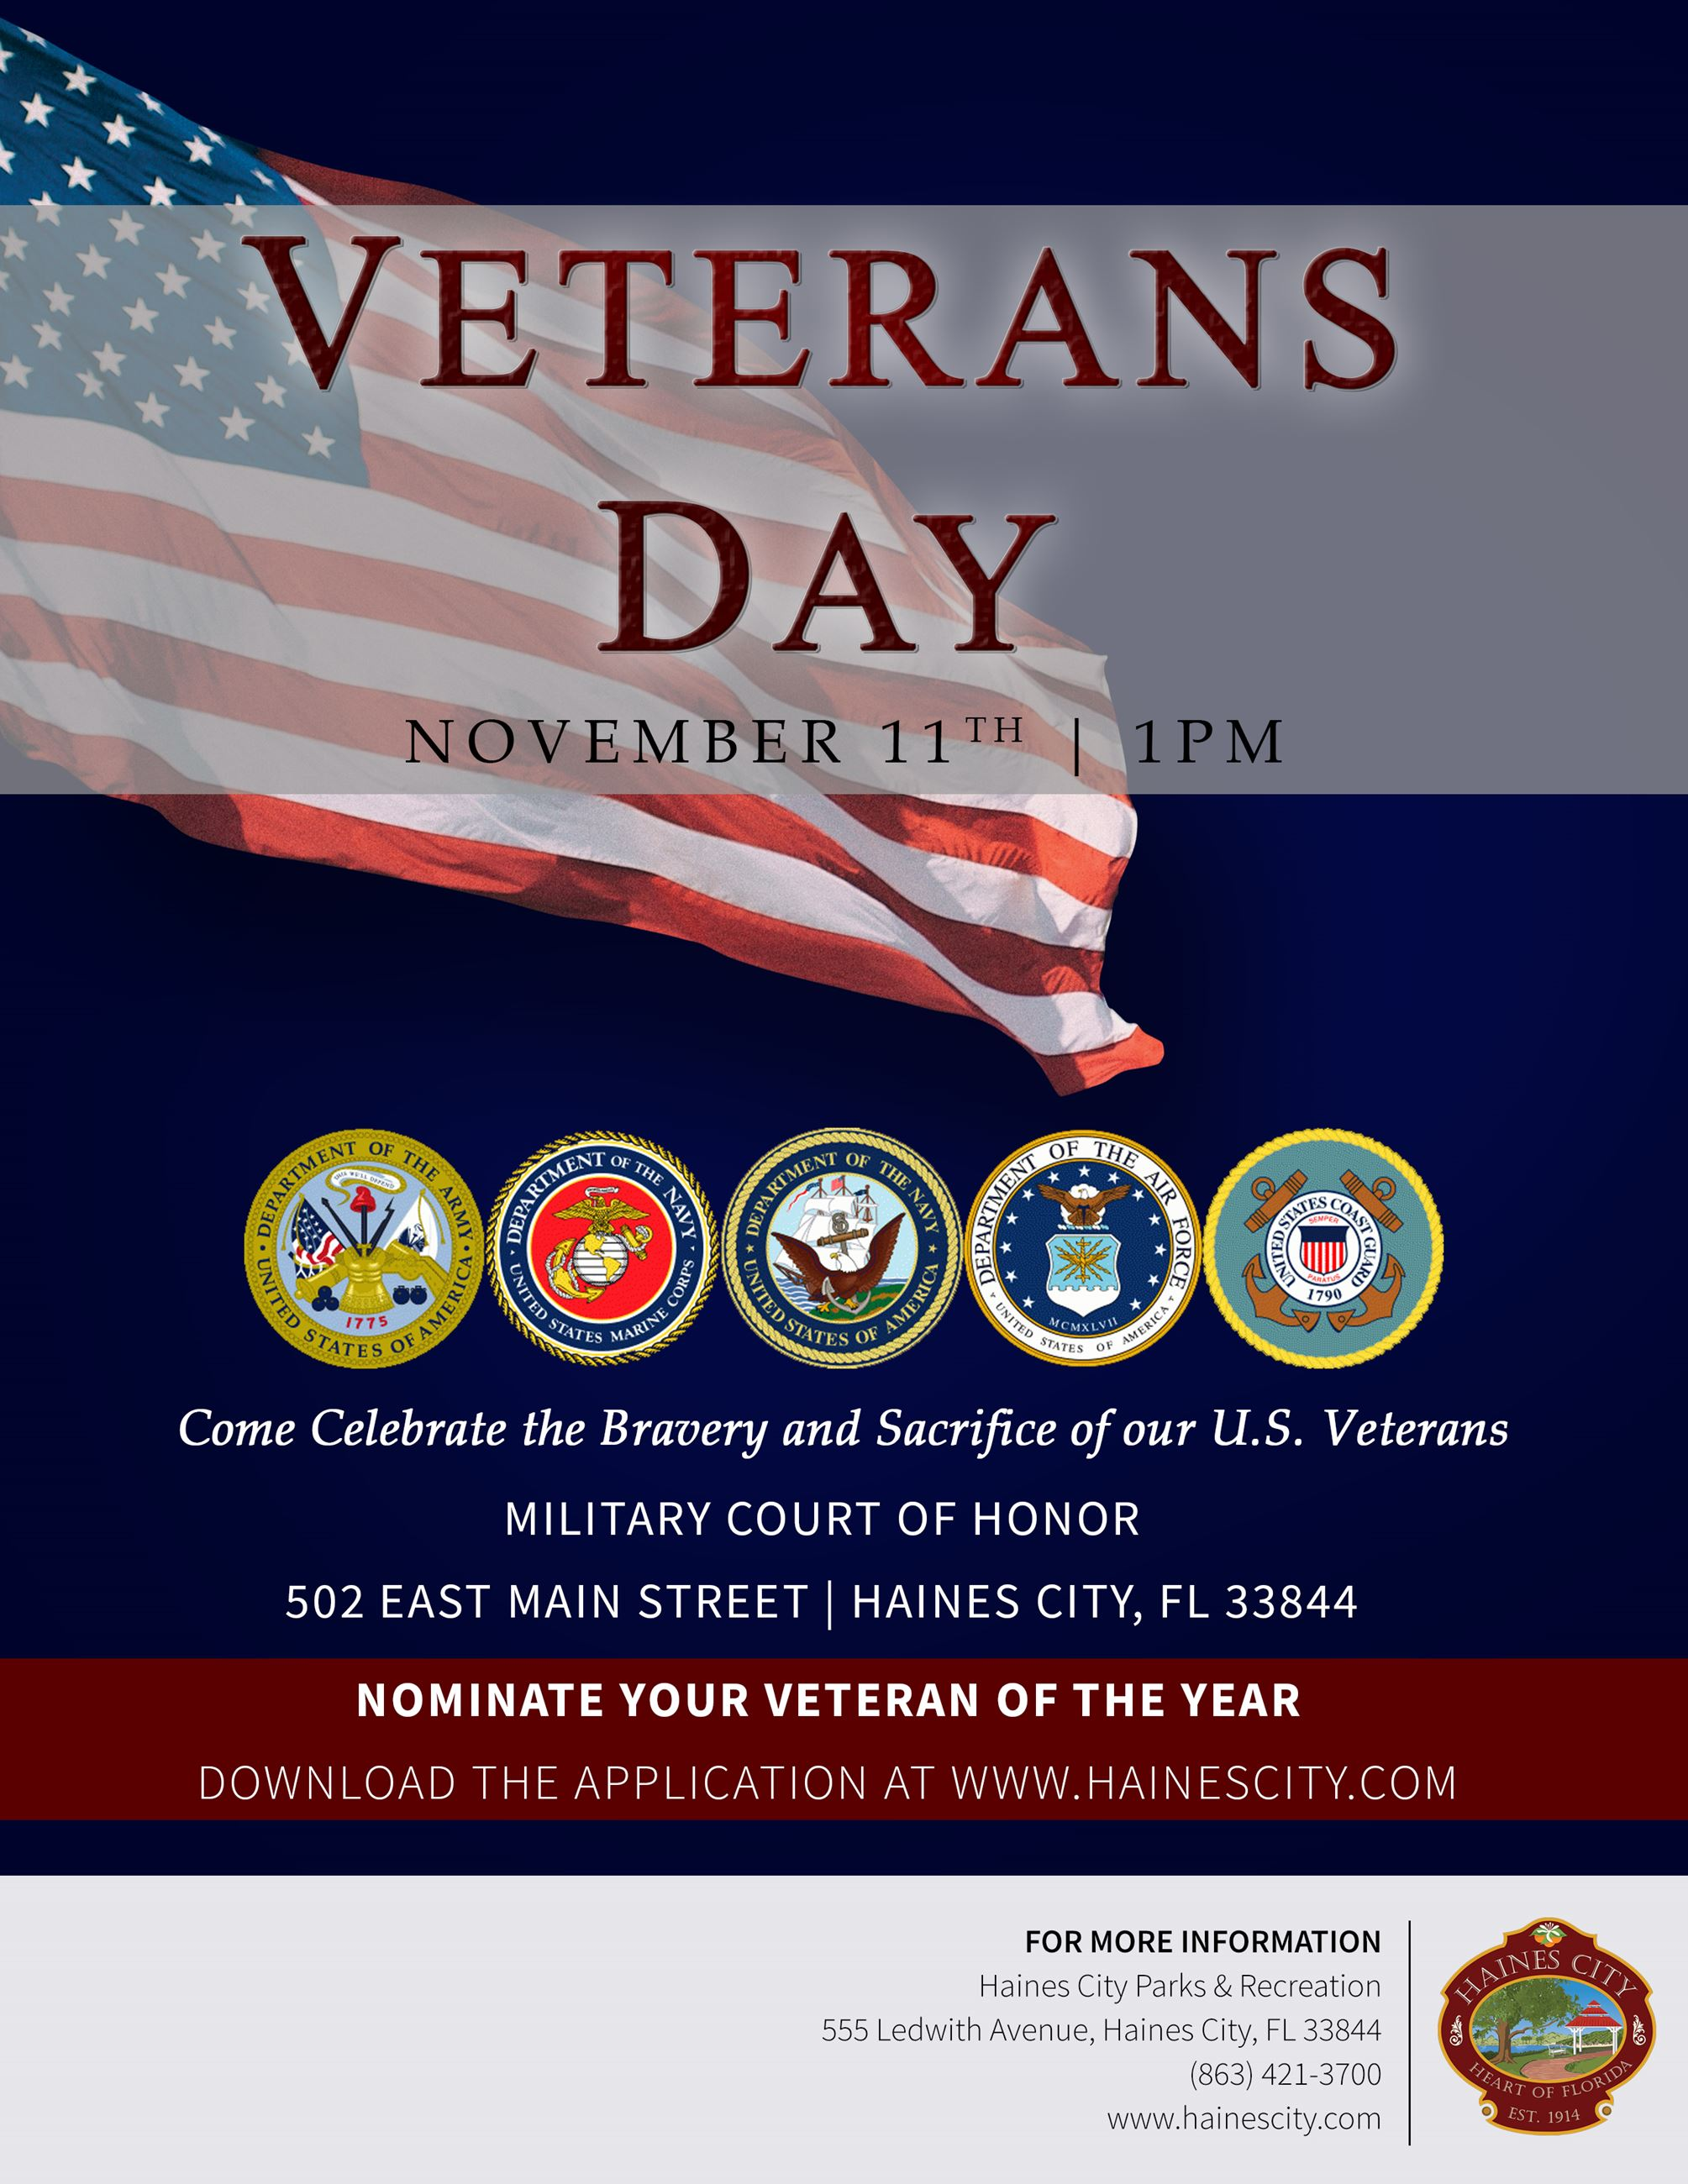 Veterans Day Flyer 2018  (image of flyer)